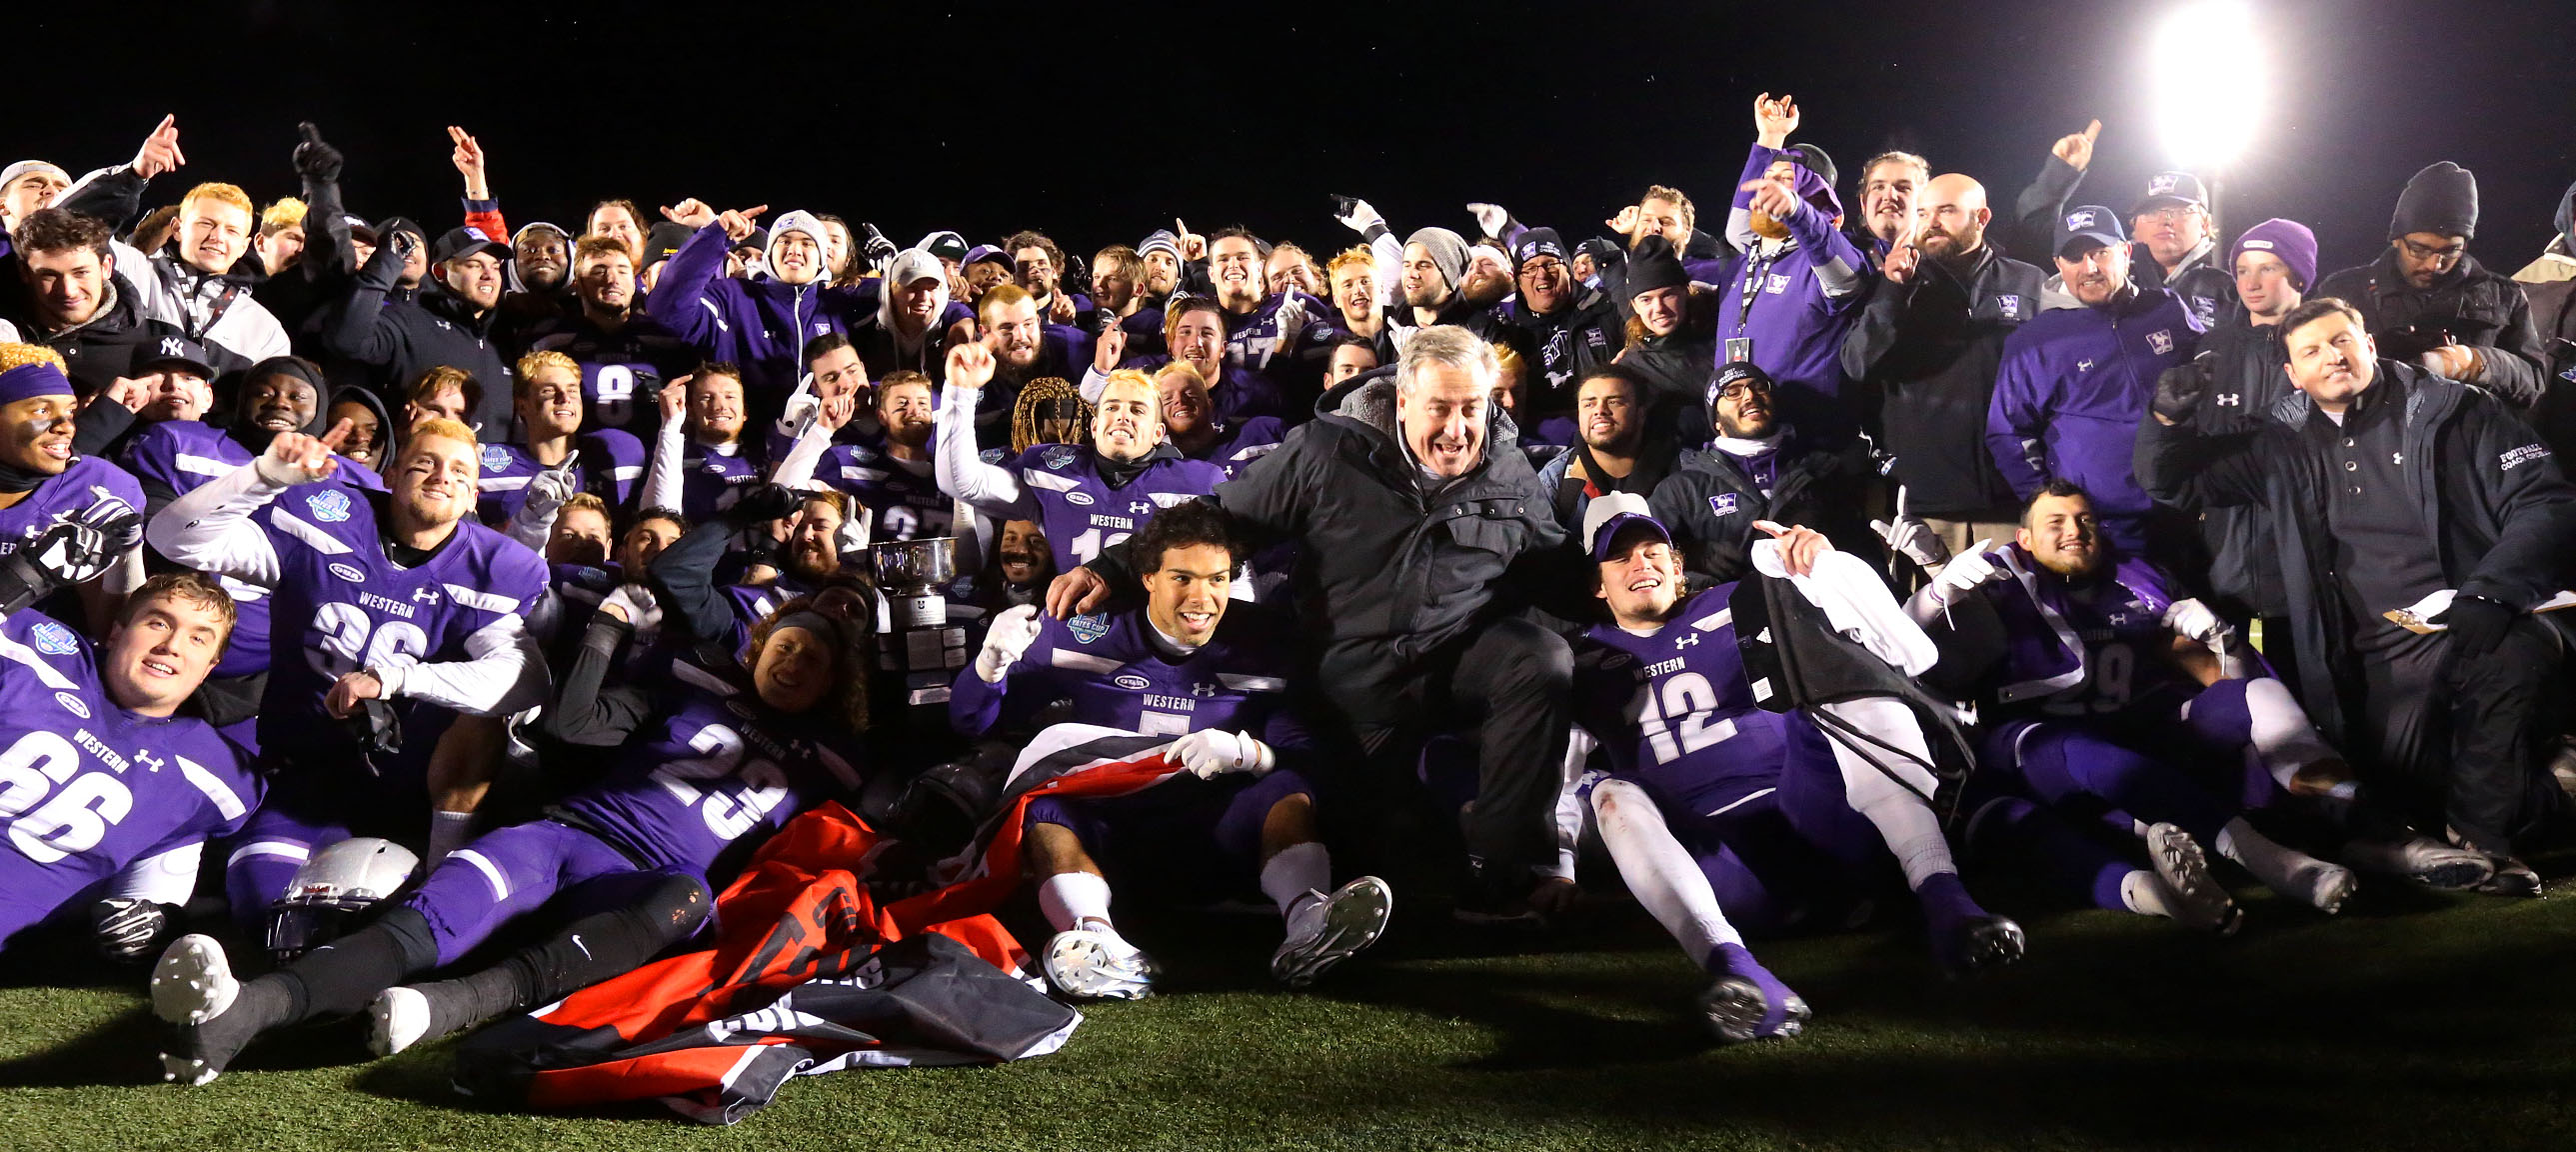 (image: Western Mustangs Football Team)